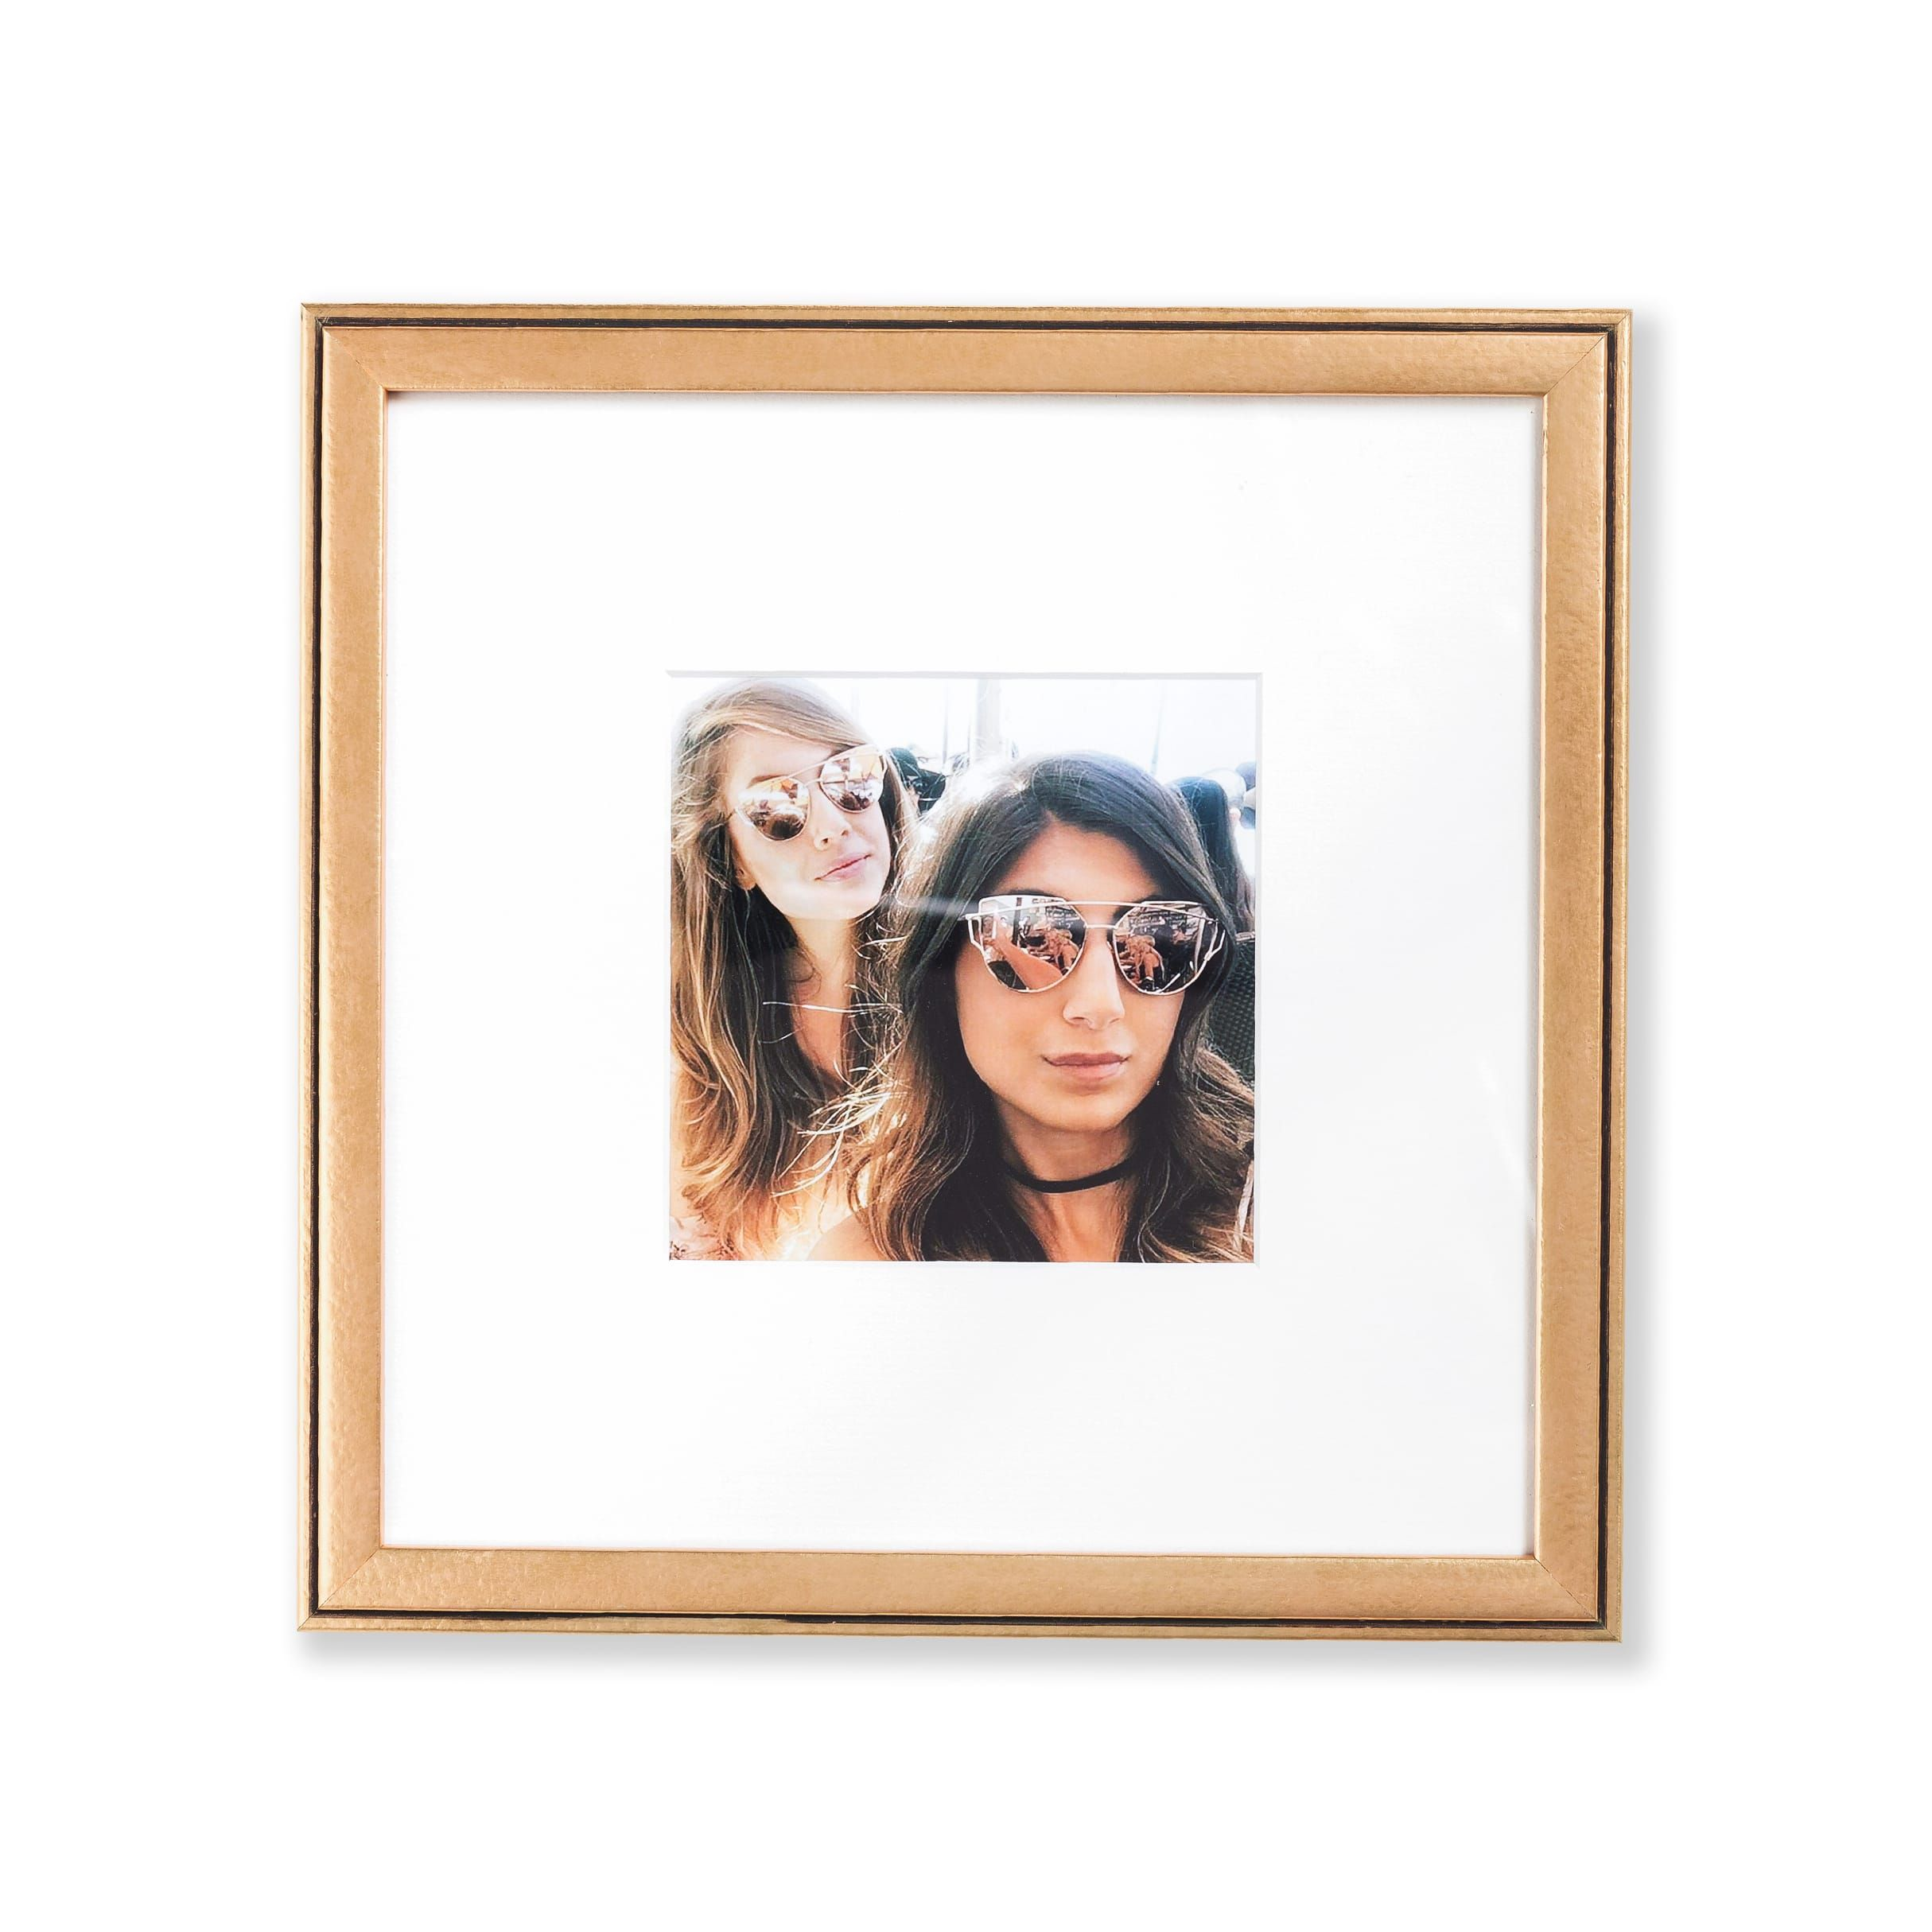 Print & Frame Instagram Photos for $39 each | Framebridge